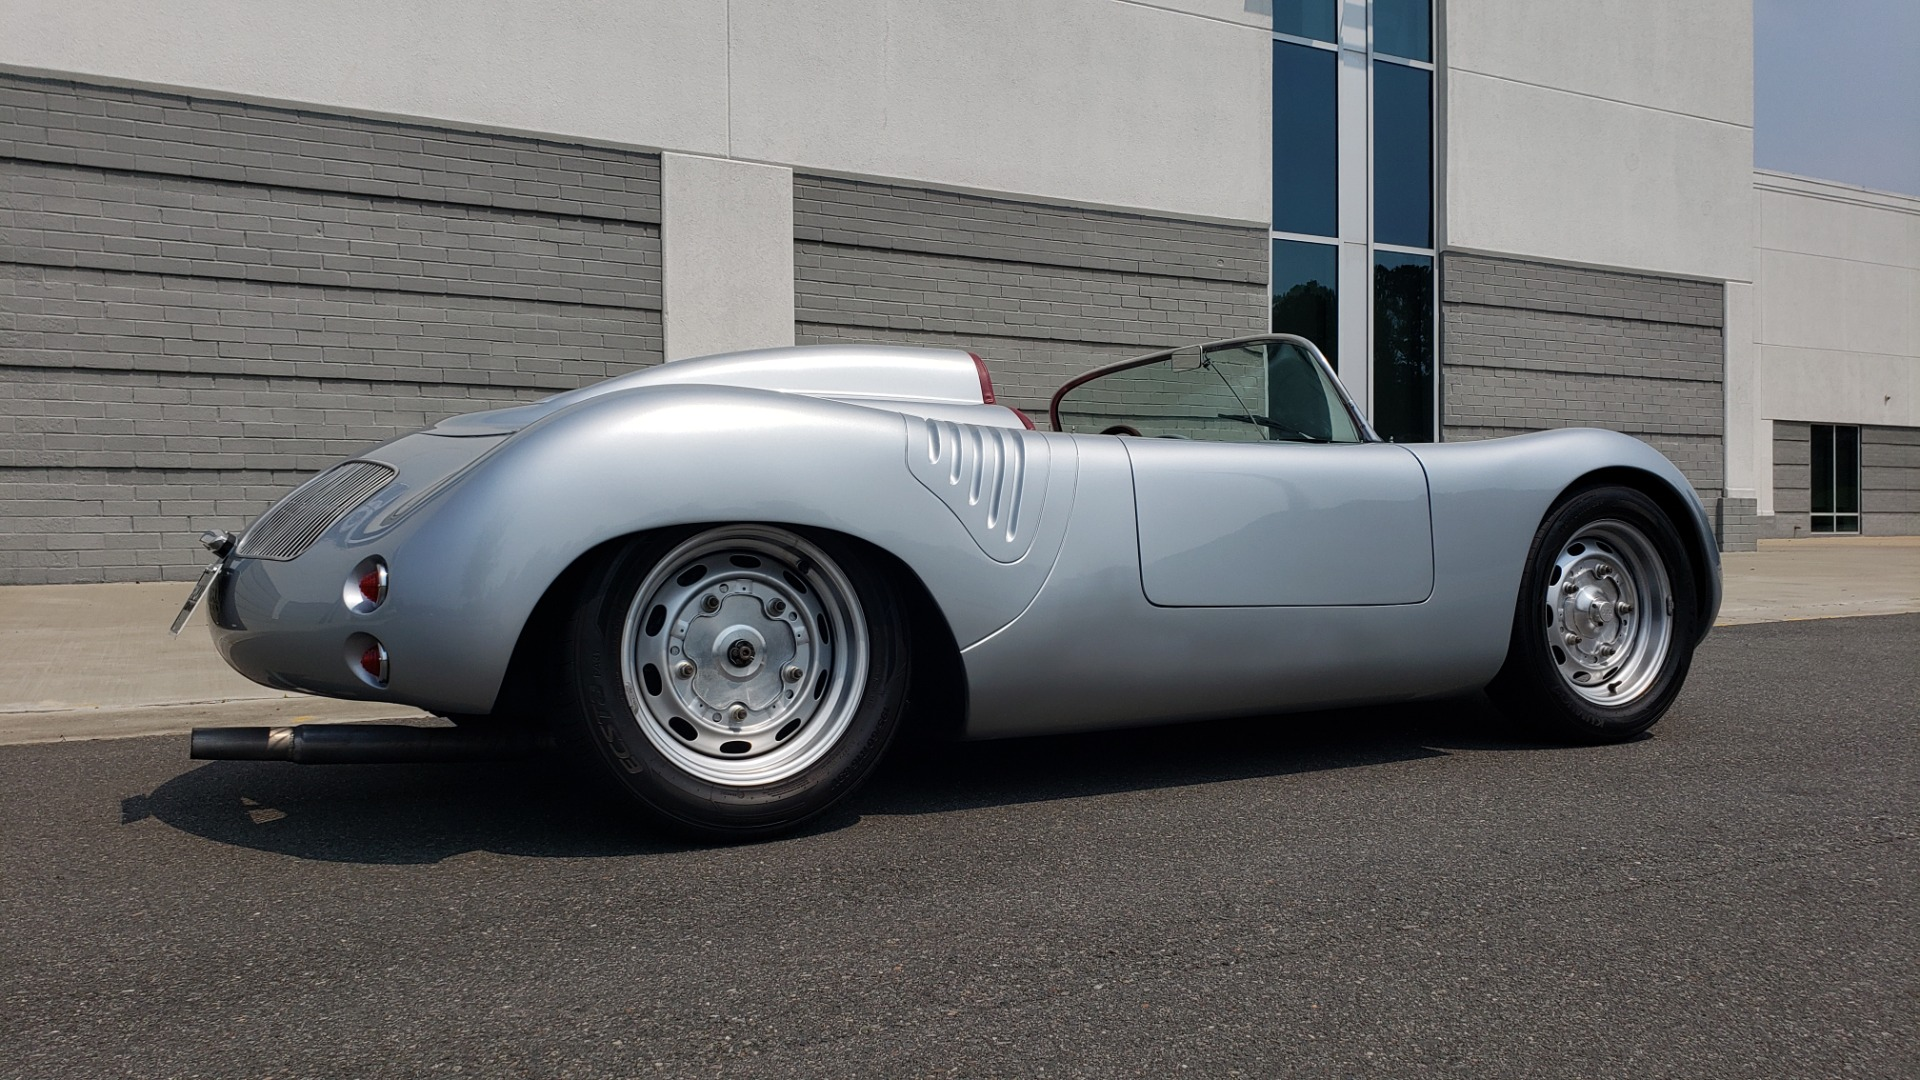 Used 1959 Porsche 718 RSK SPYDER REPLICA / 2275CC W/44MM WEBER (160HP) / 4-SPD MANUAL for sale $39,999 at Formula Imports in Charlotte NC 28227 6